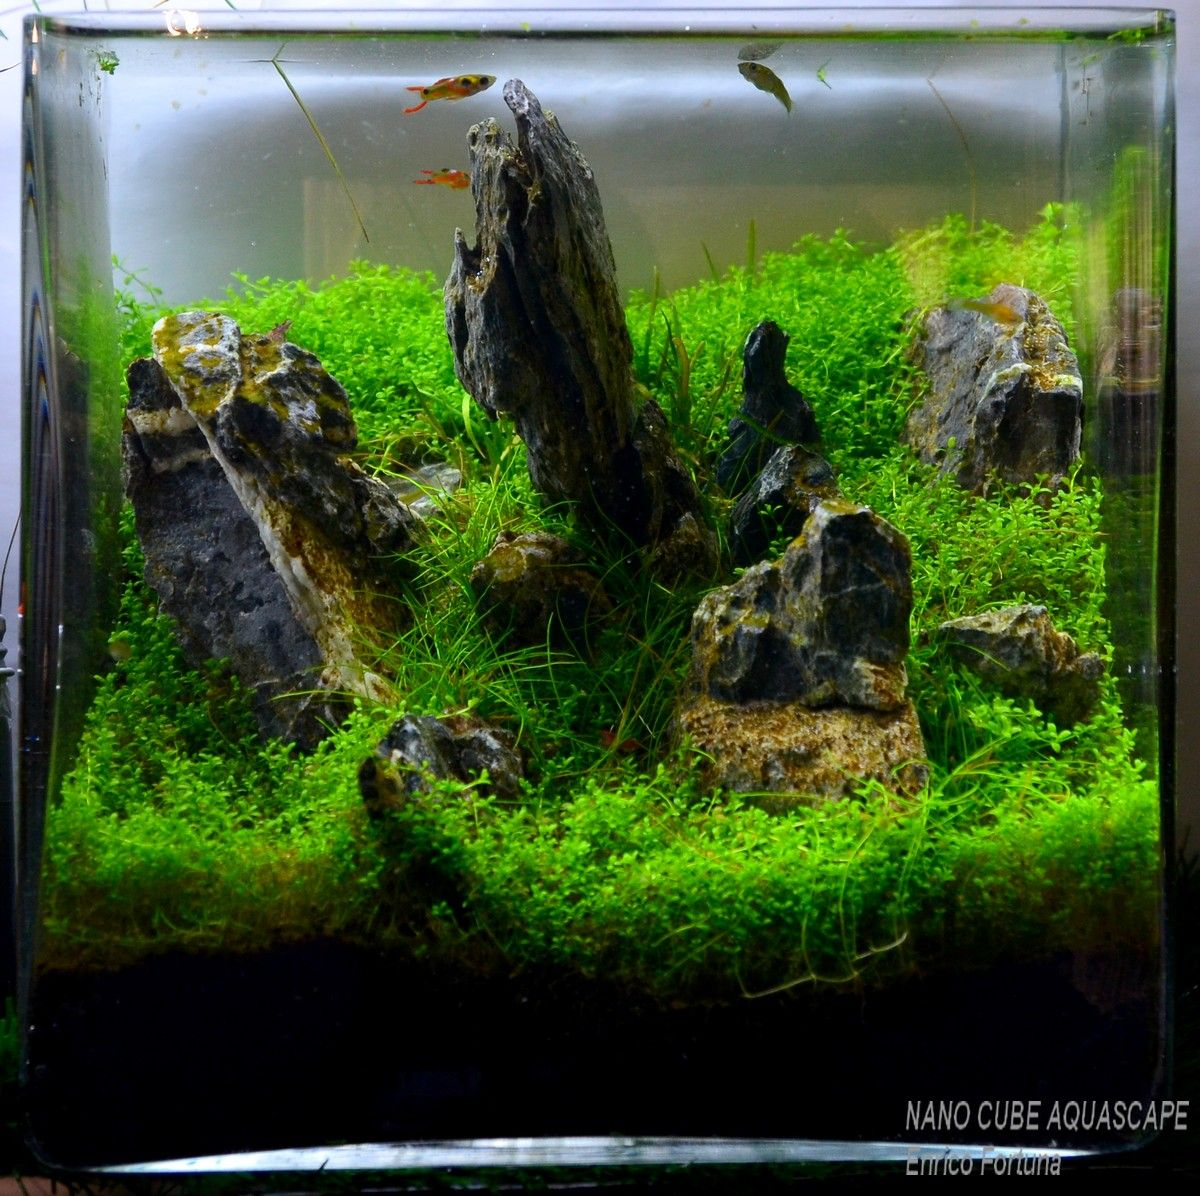 nano cube aquascaping nature aquarium aquascaping by enrico fortuna pinterest aquascaping. Black Bedroom Furniture Sets. Home Design Ideas